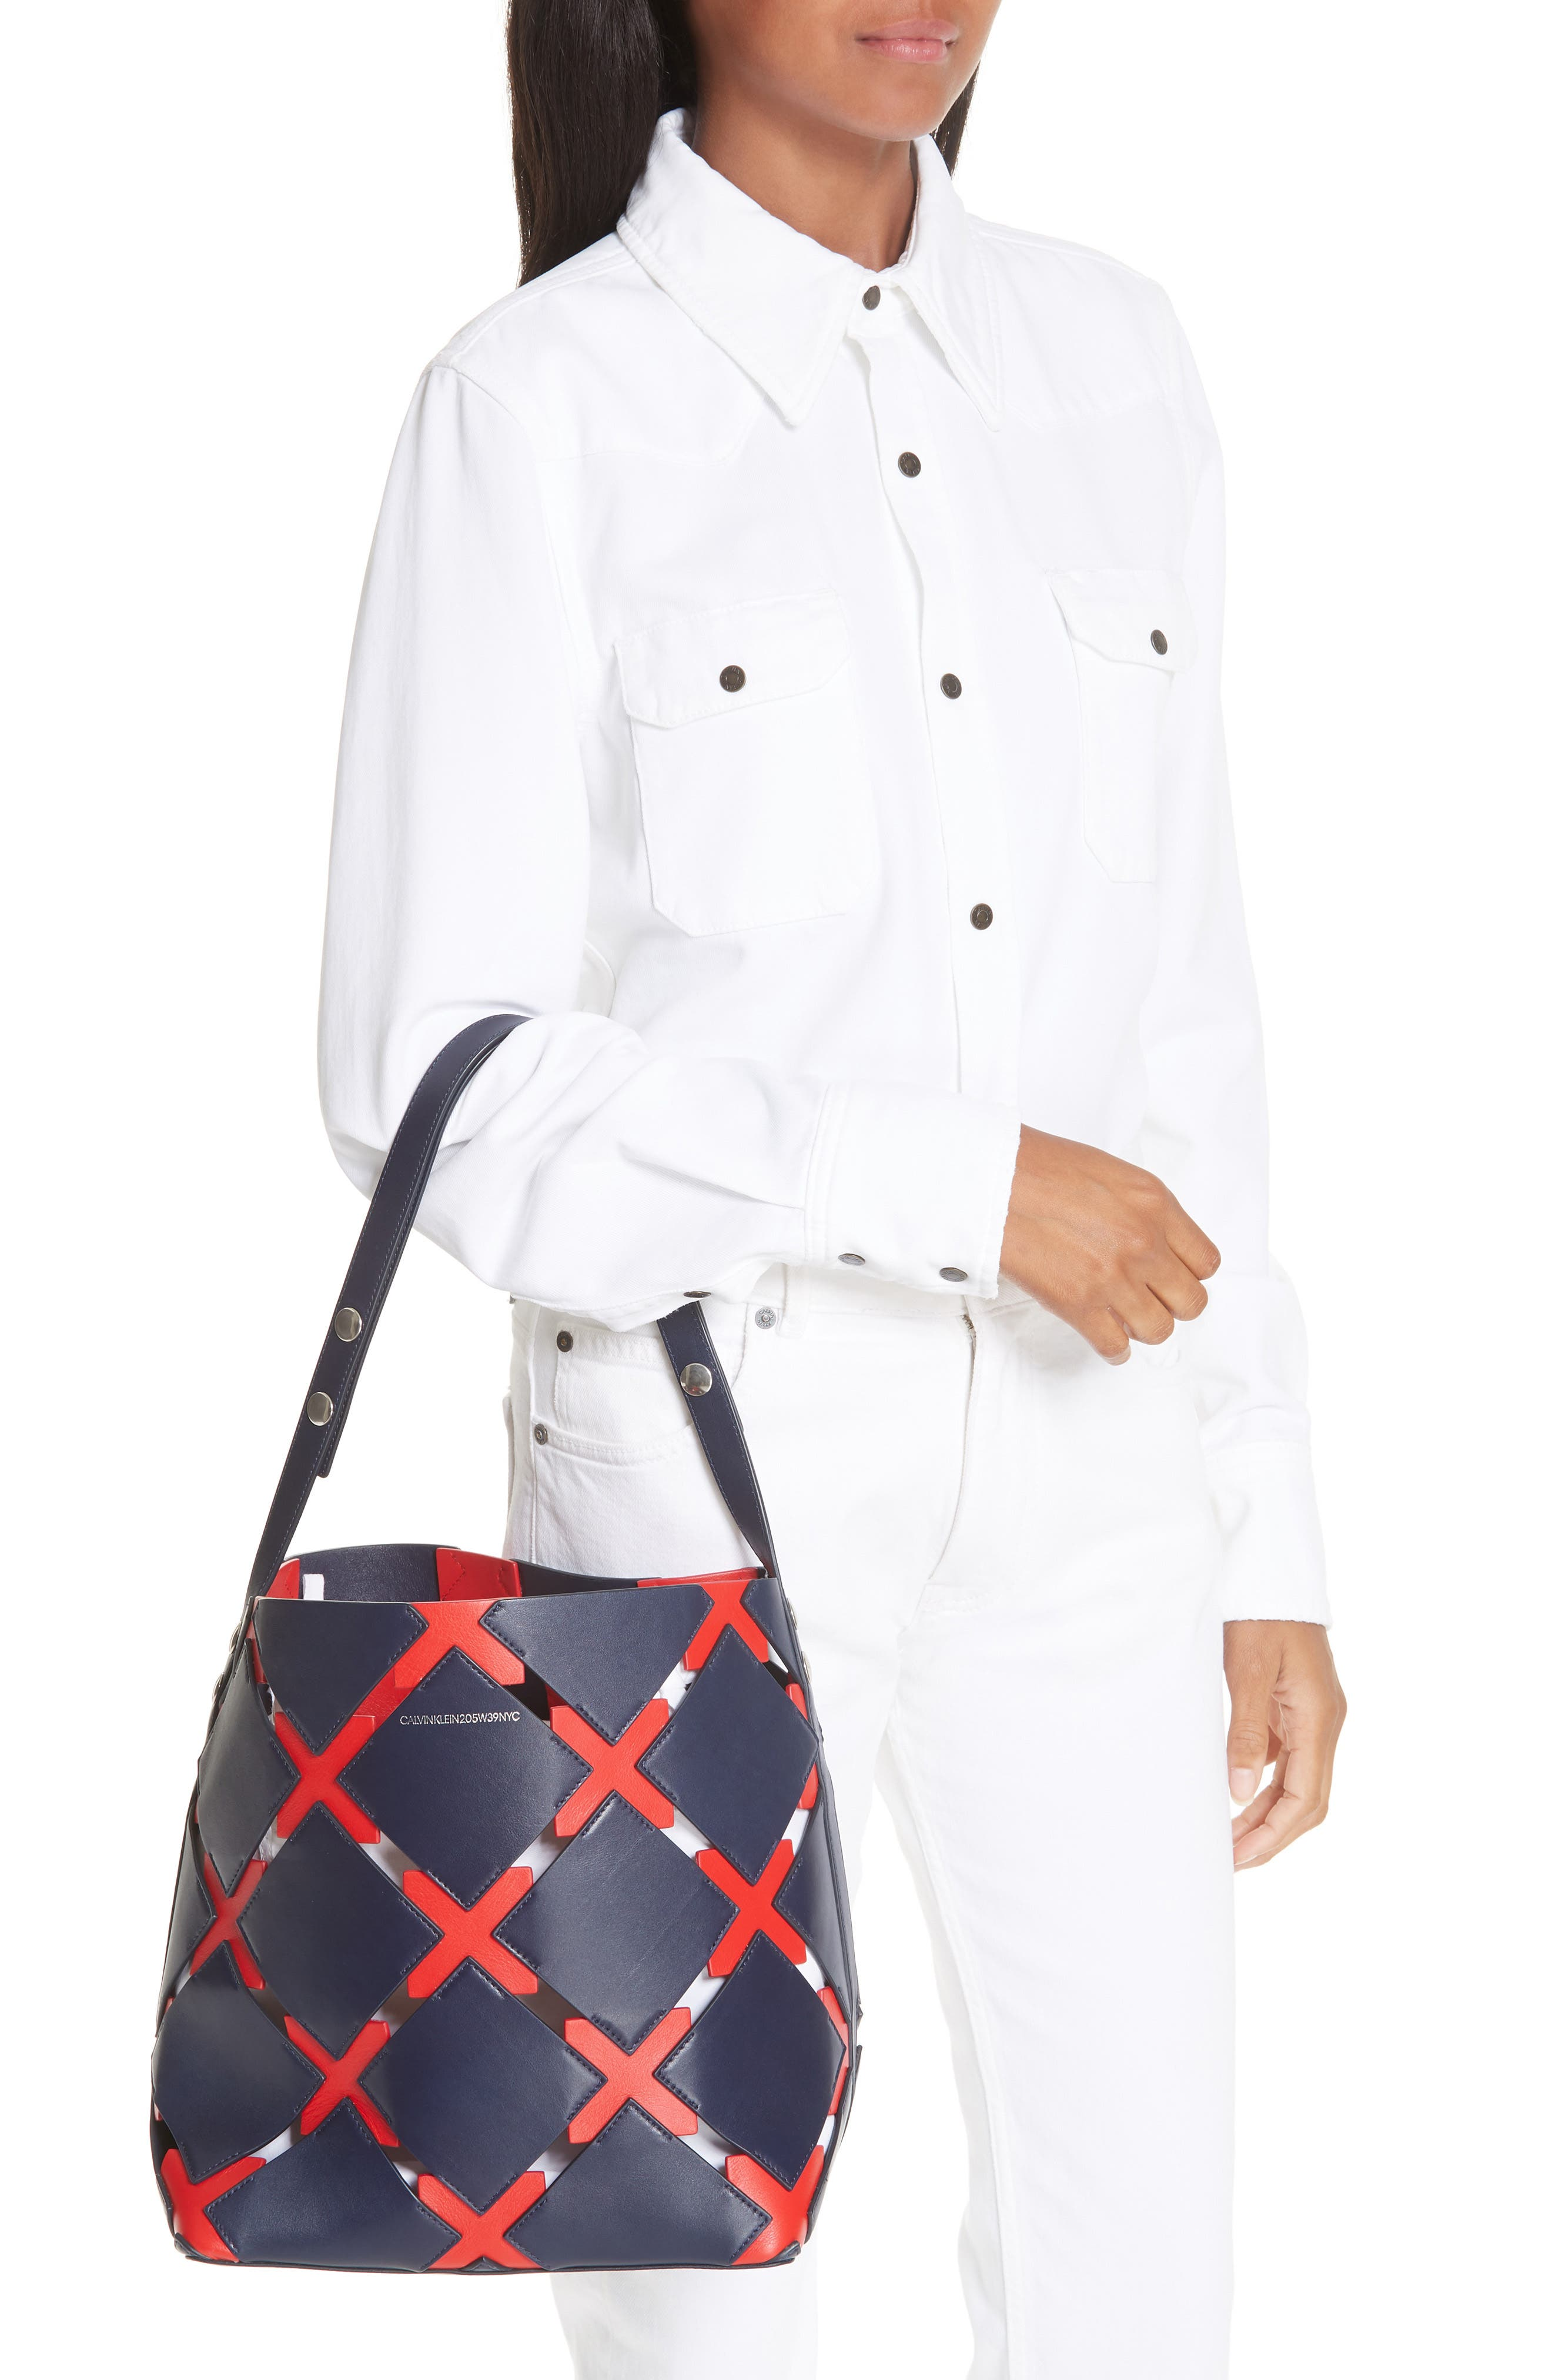 Patchwork Quilt Leather Bucket Bag,                             Alternate thumbnail 2, color,                             NAVY/ RED